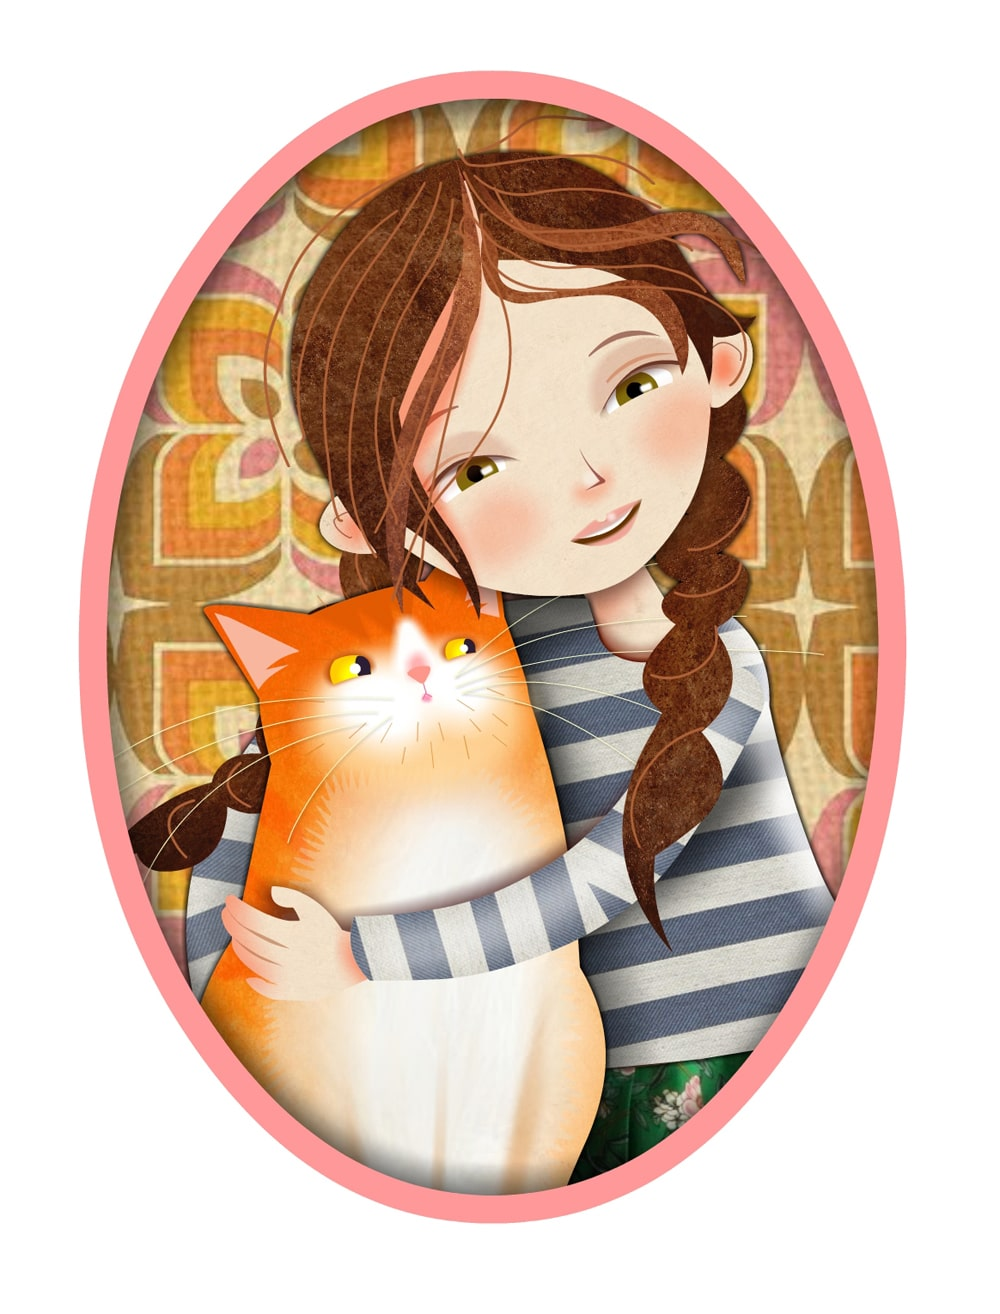 Best Friends illustration - Luella Jane